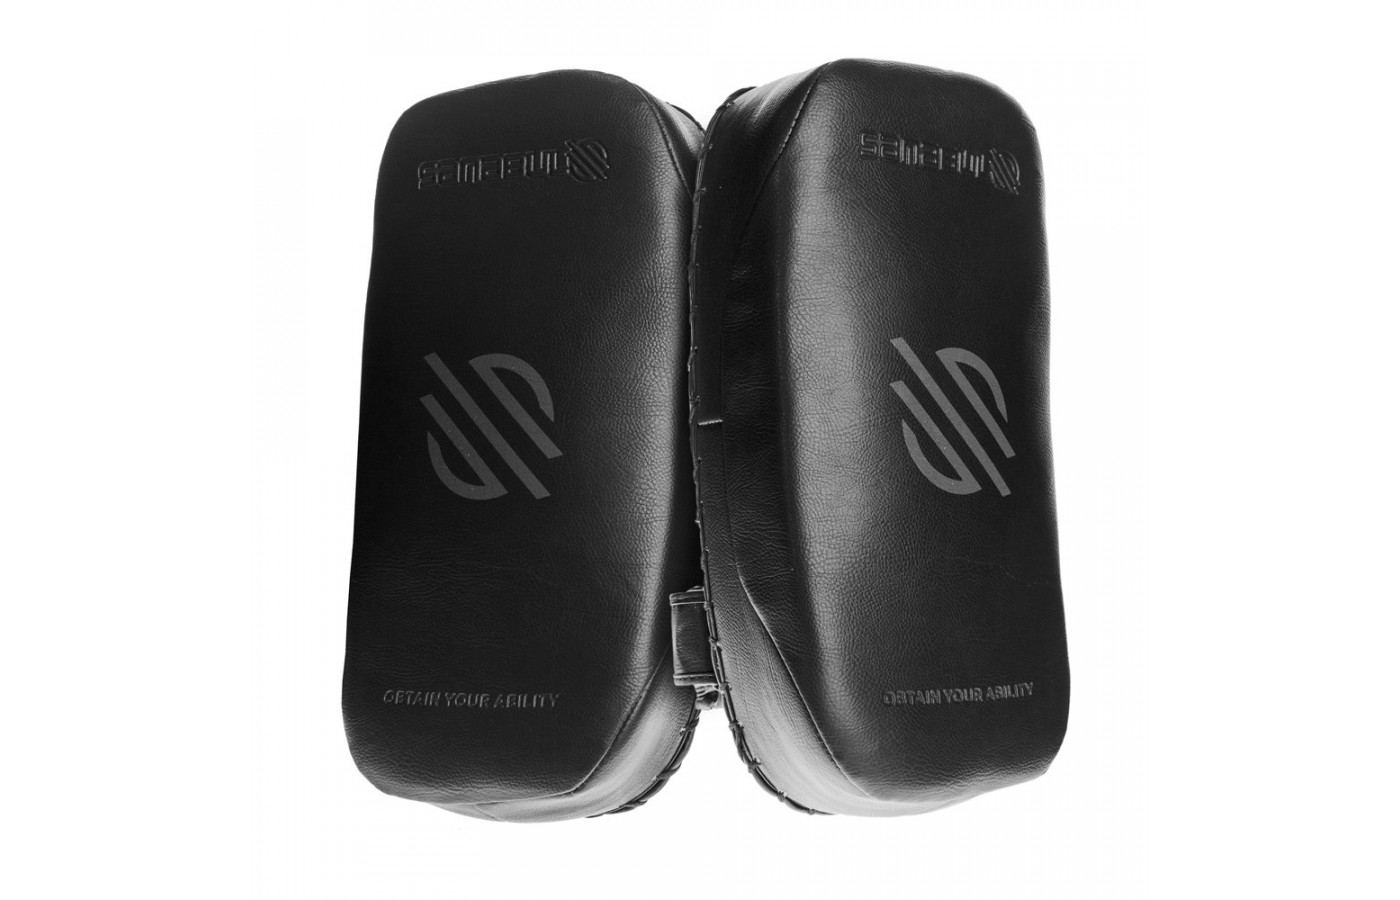 sanabul battle forged pads front angle